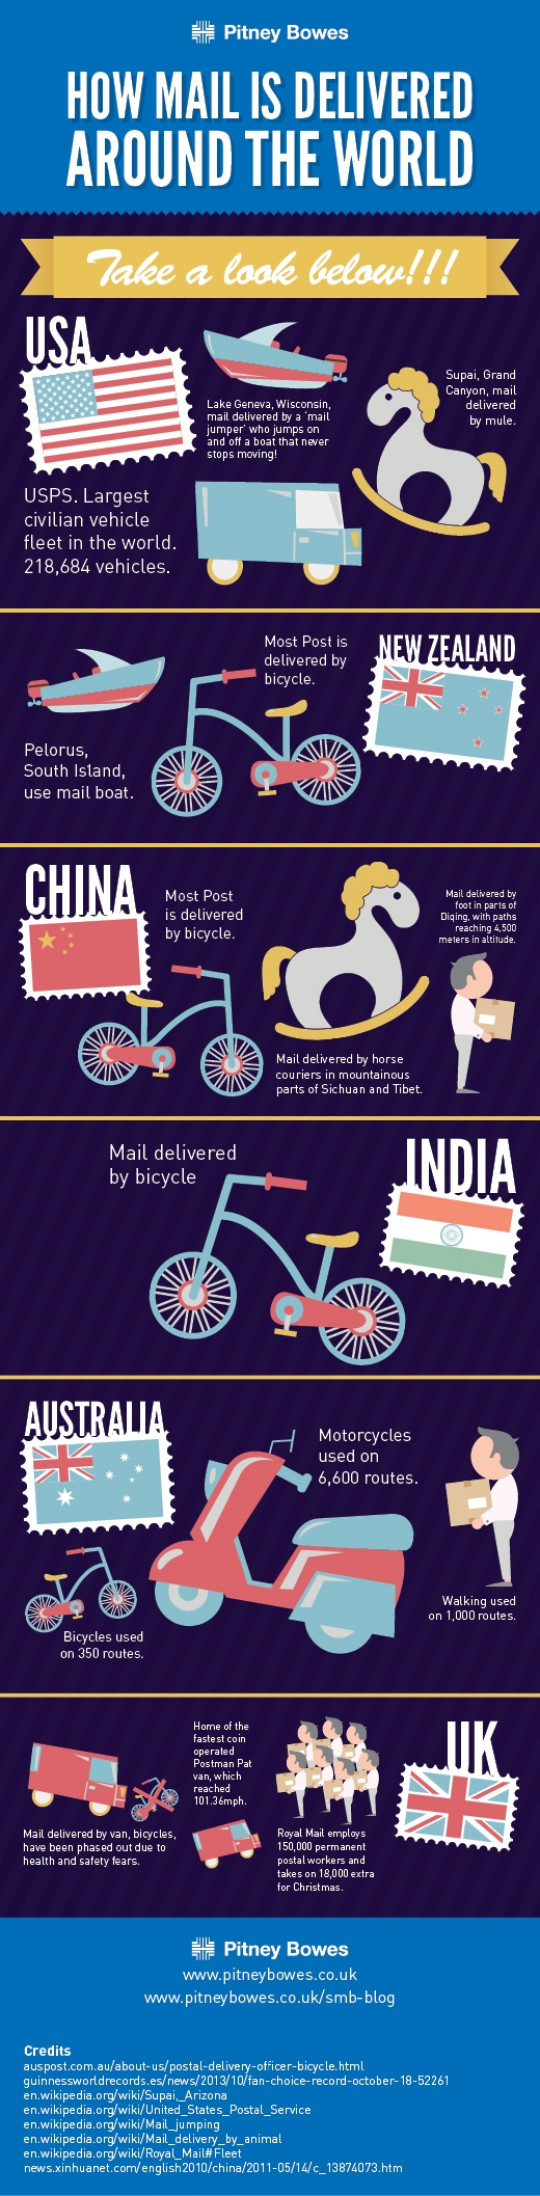 How is Mail Delivered Around the World